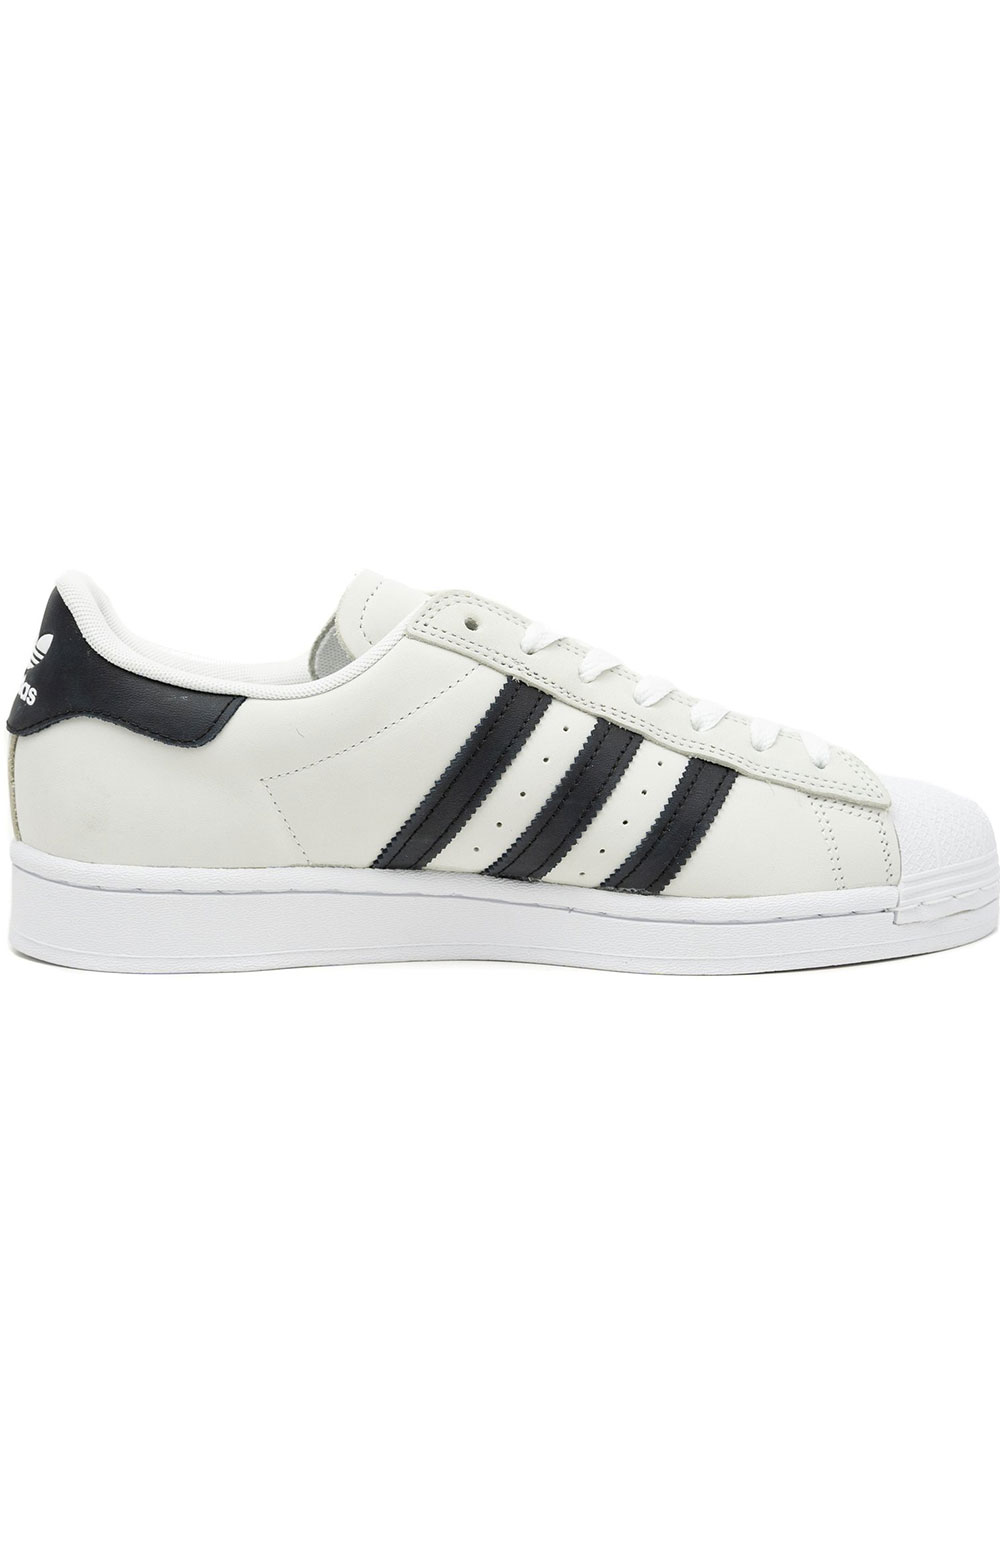 (FV0322) Superstar Adv Shoes - White/Black